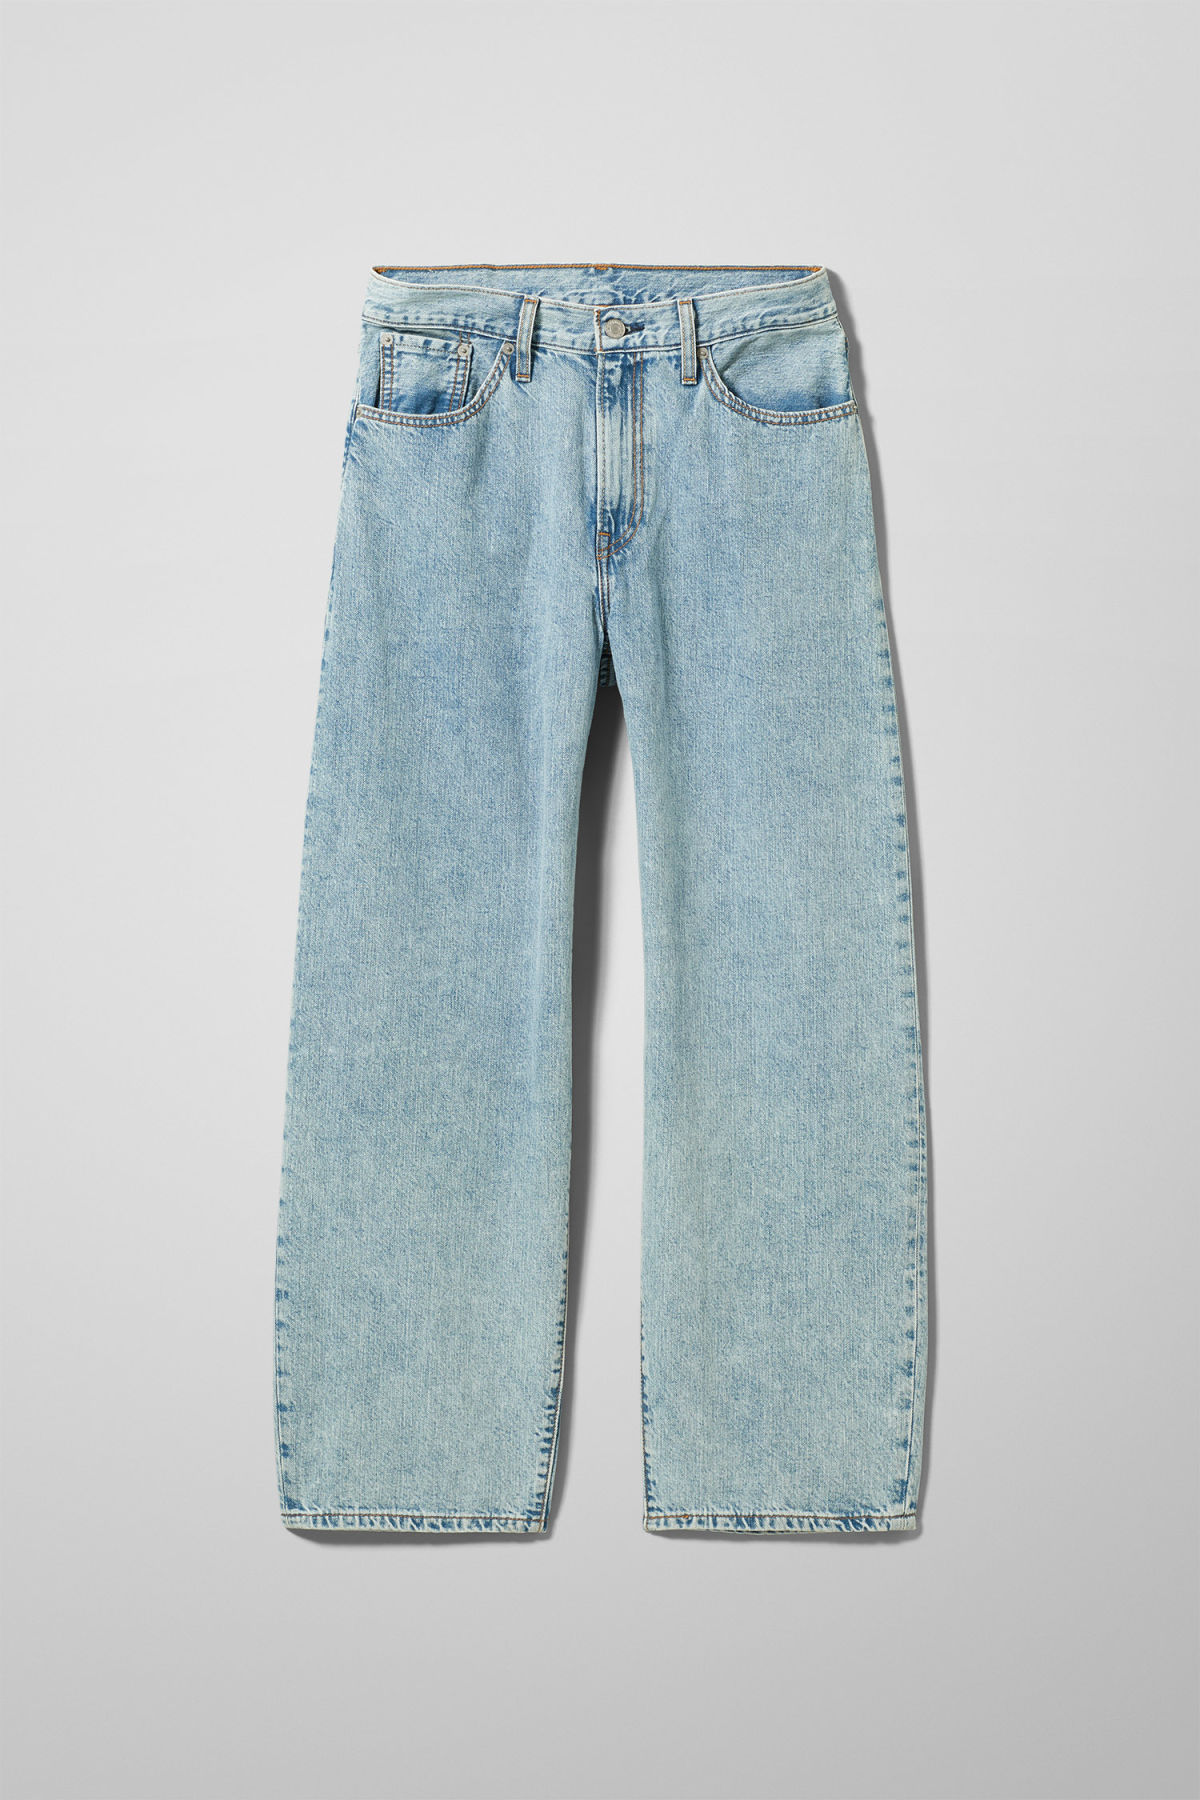 Baggy Jeans Men